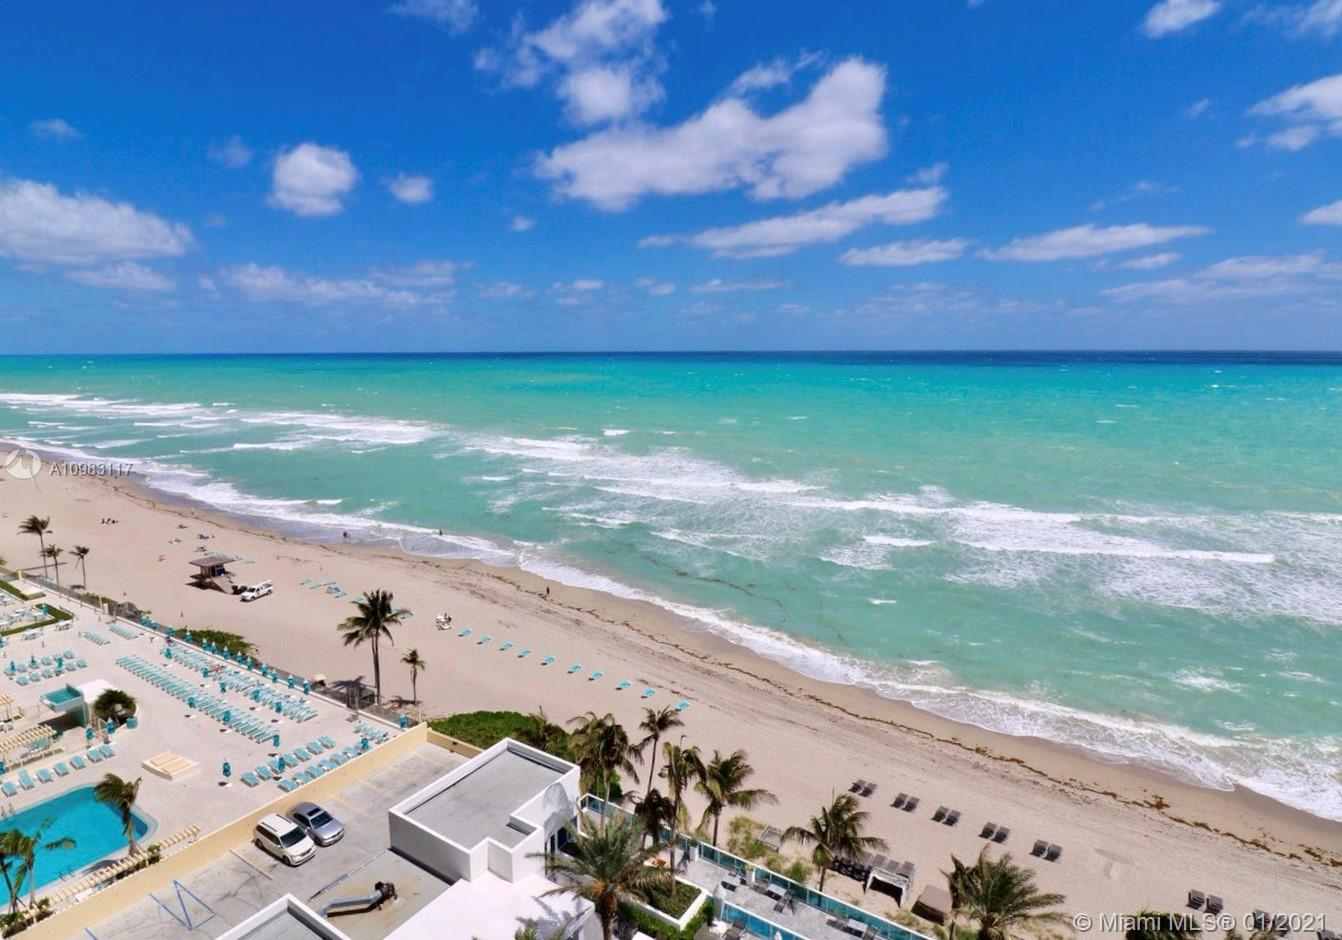 Best buyer in the tower. This is the one!  Fully furnished unit at Trump Hollywood. Features 3,395 SF, 3 Beds/Den and 3.5 Baths.  Experience unsurpassed views of the ocean and also the intracoastal sunsets. Private balcony and elevator.   Building offers upscale amenities including concierge, party room, breakfast area, gym, sauna, theatre, library and wine cellar.